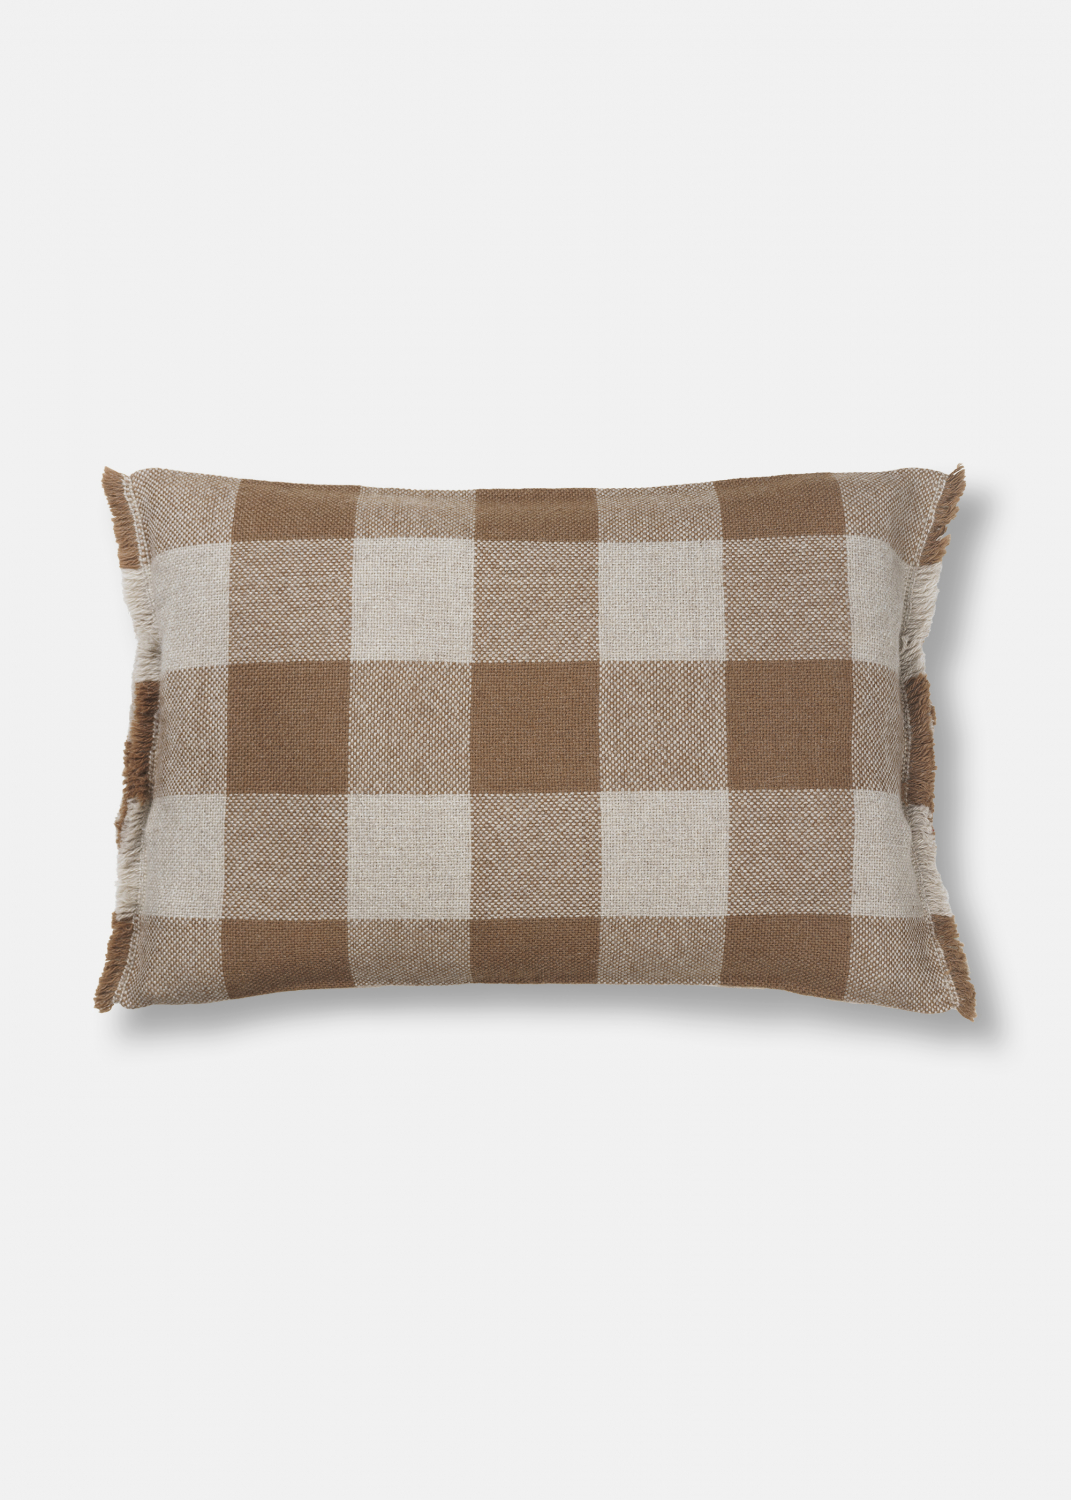 Cushions - Garmin Pillow (40x60) Thumbnail